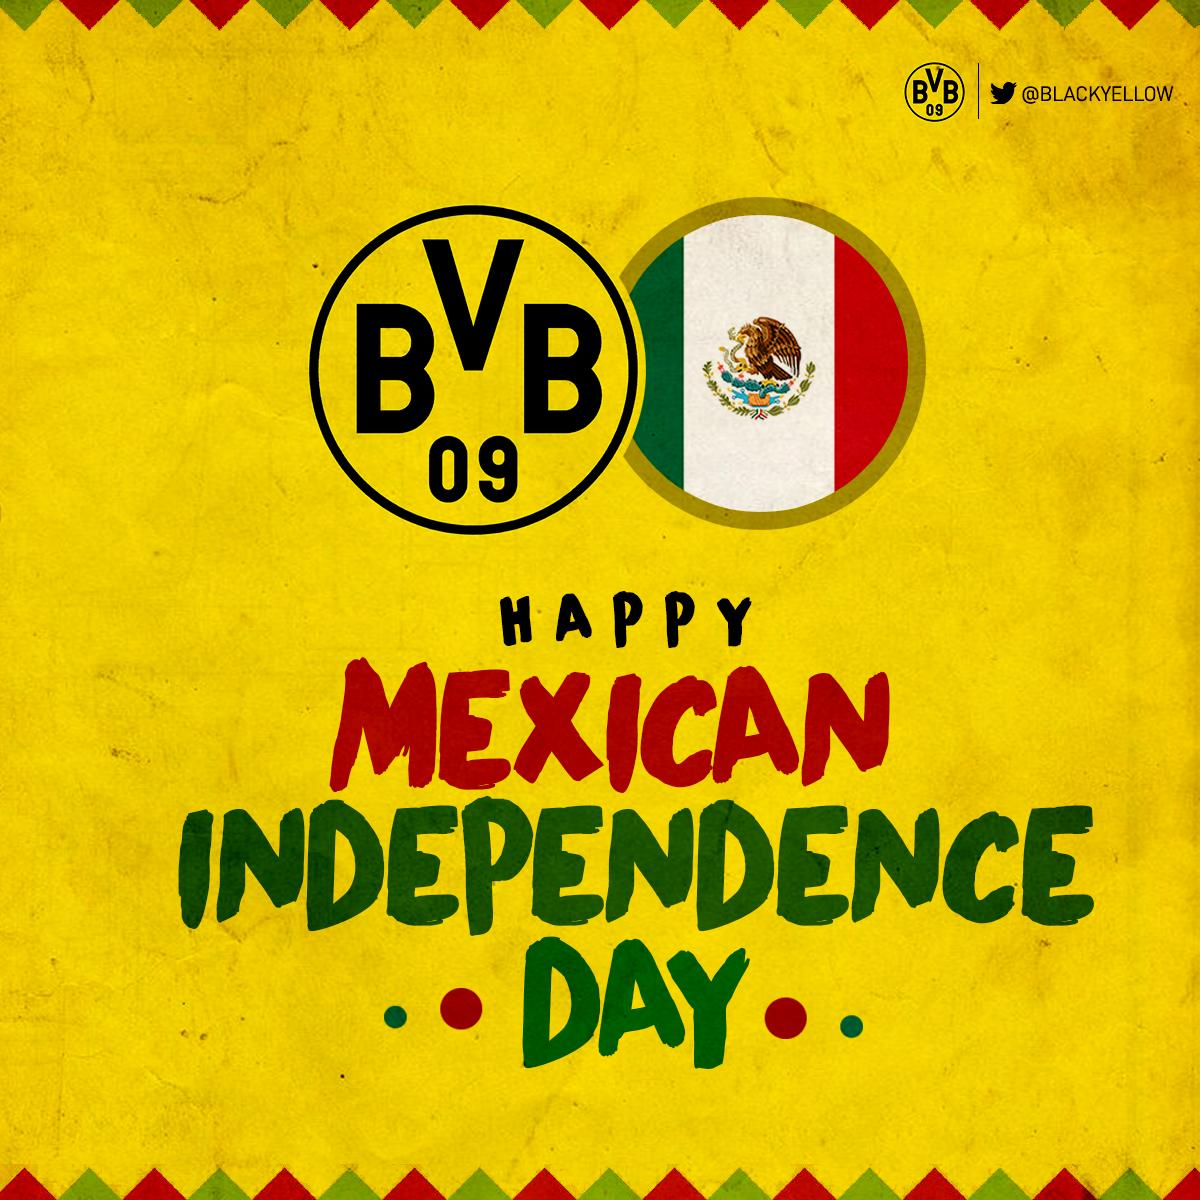 Happy #MexicanIndependenceDay to our friends and fans celebrating around the world!   ¡Disfruten las celebraciones!  <br>http://pic.twitter.com/H9mhDxhm7n